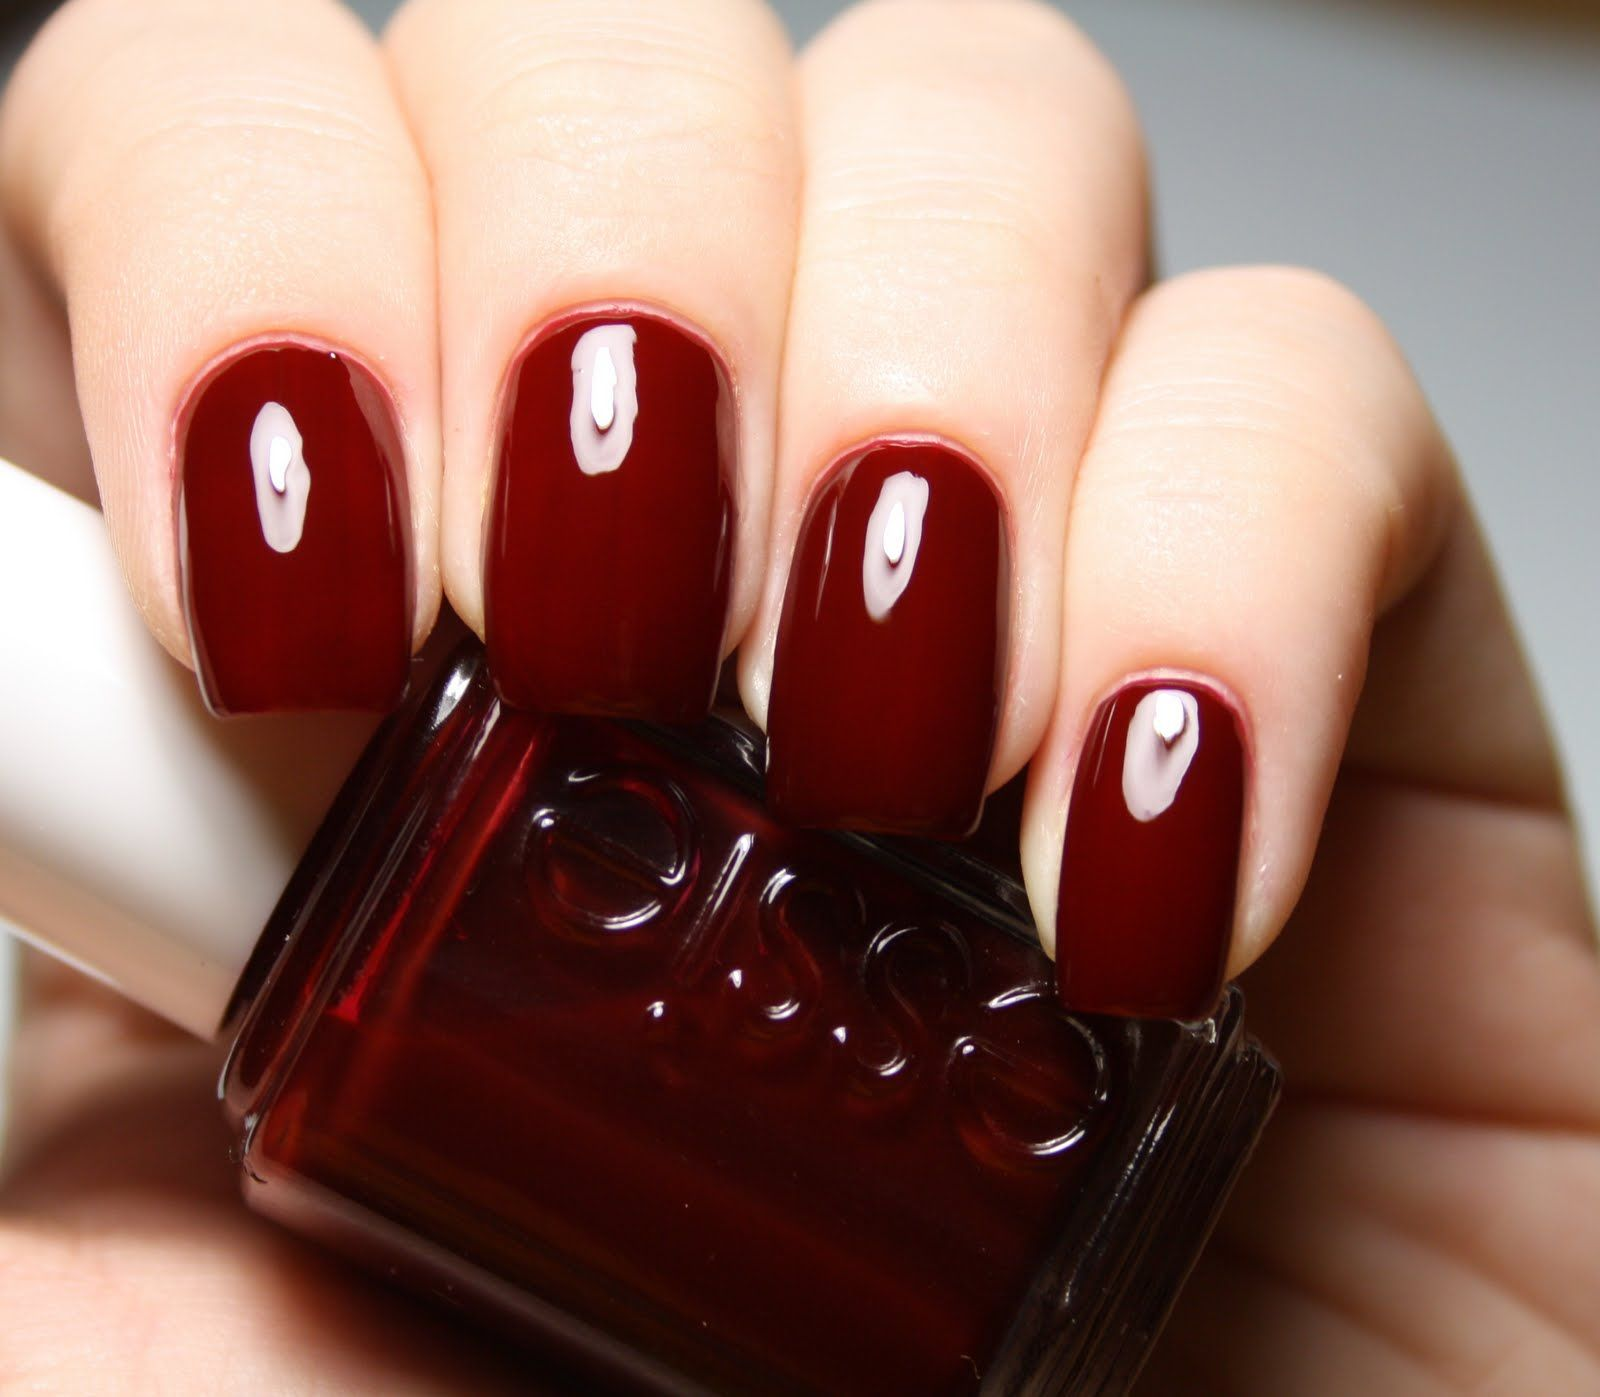 I M Up To My Ears In Studying But There Is Always Some Time For A Little Nail Polish Essie Poor Lil Rich An Amazing C